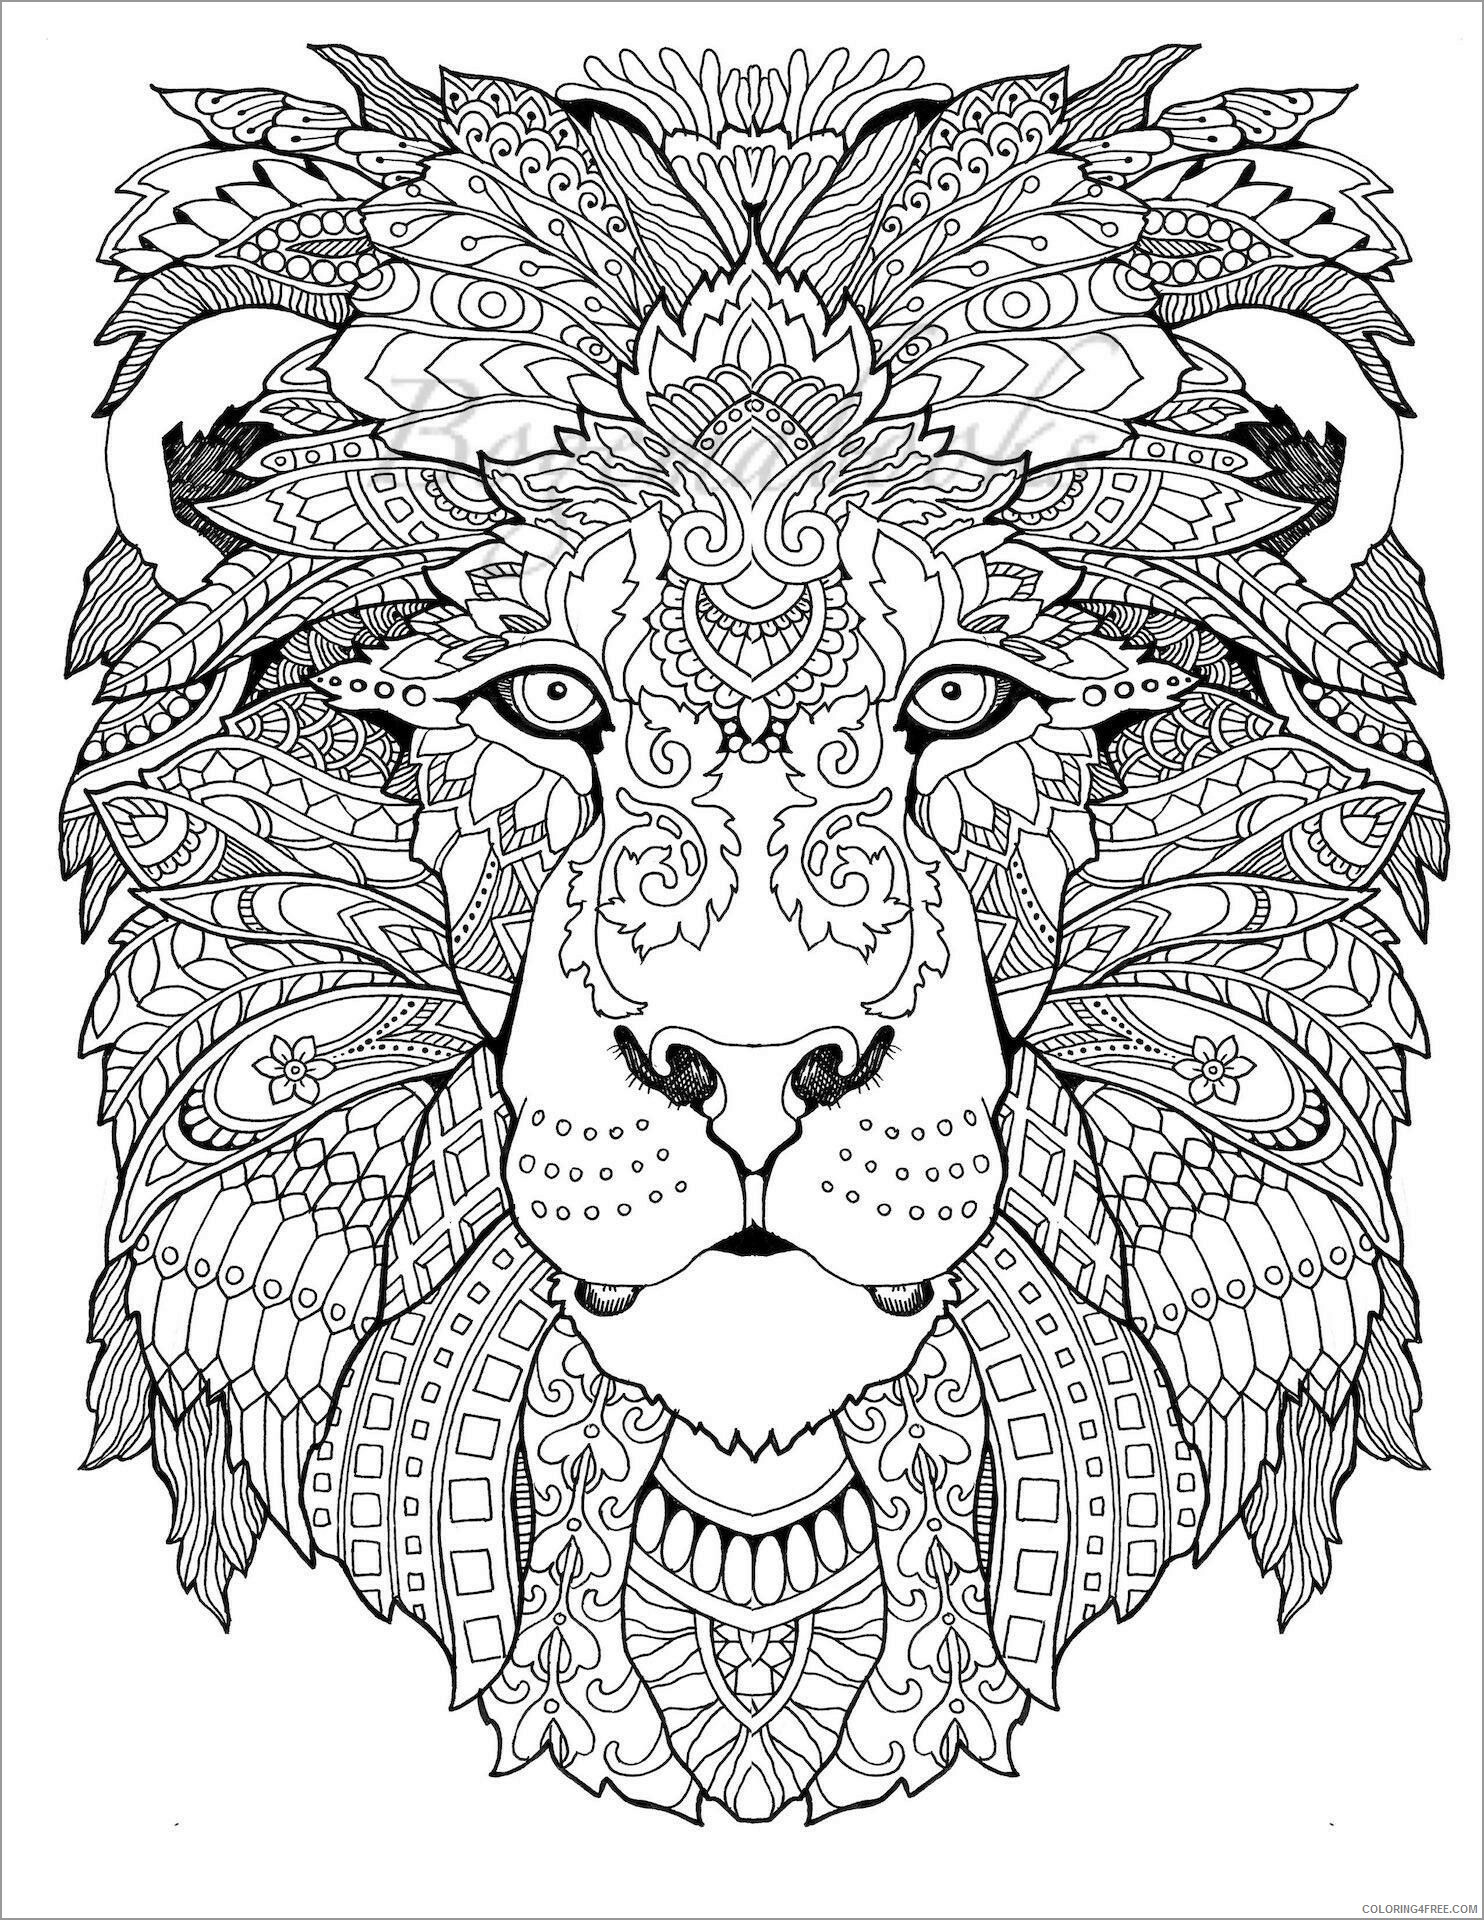 Abstract Coloring Pages Adult Abstract Animals Lion Head Printable 2020 020 Coloring4free Coloring4free Com